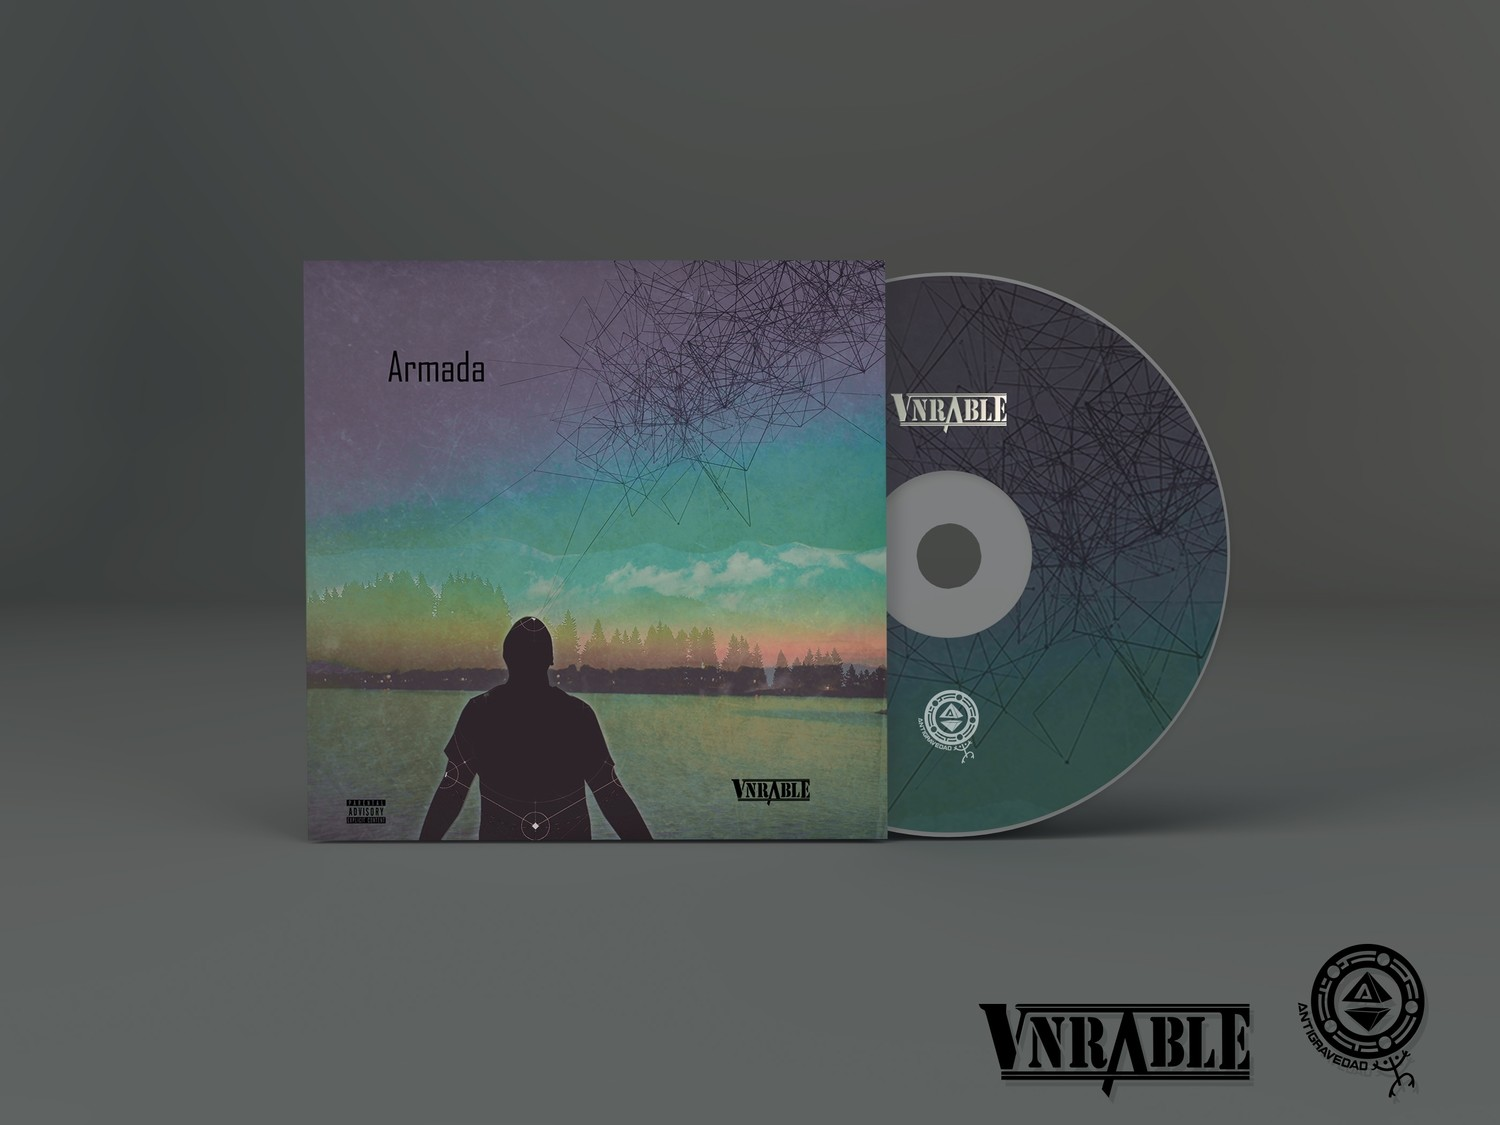 Armada by Vnrable, Physical Copy CD [Limited Edition]